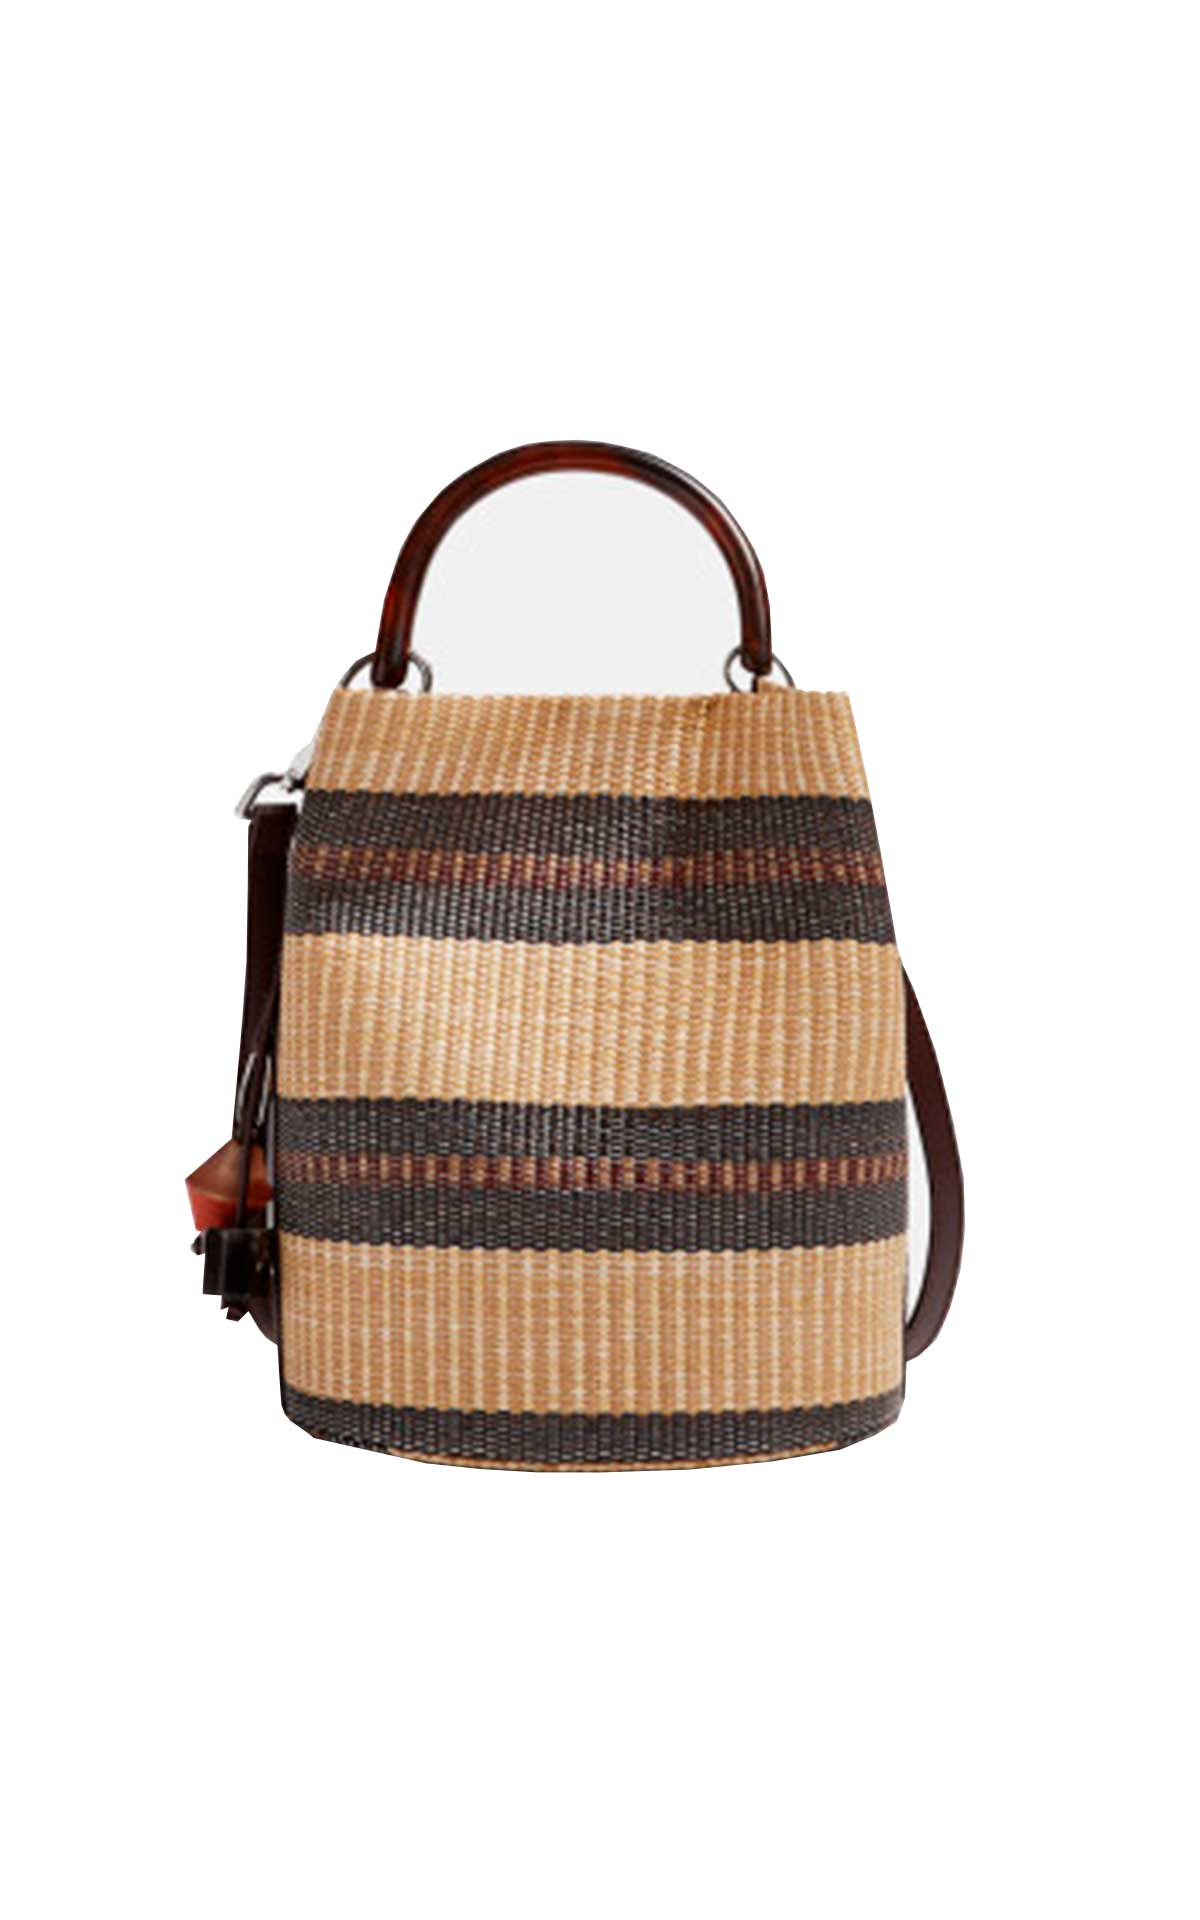 Raffia bucket bag Adolfo Dominguez